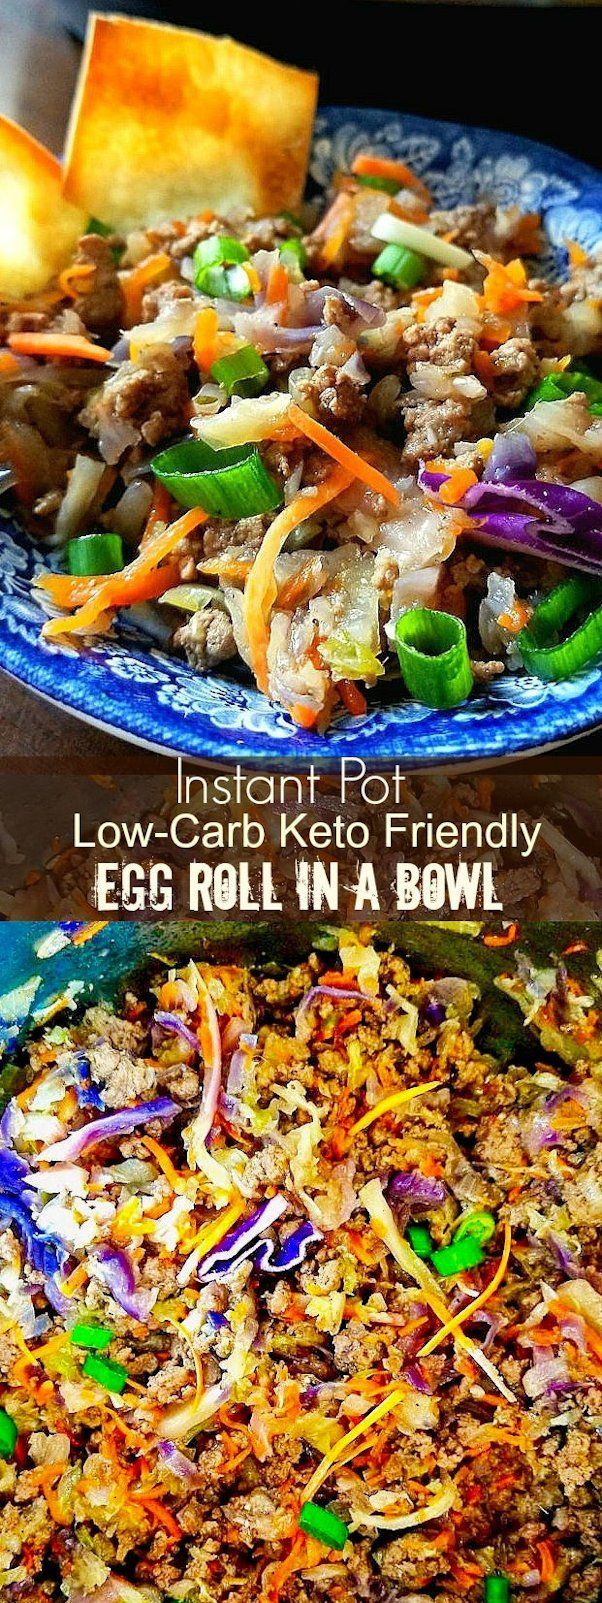 Instant Pot Egg Roll Bowls, Low Carb and Keto Friendly #lowcarb #keto #eggrolls #eggrollinabowl